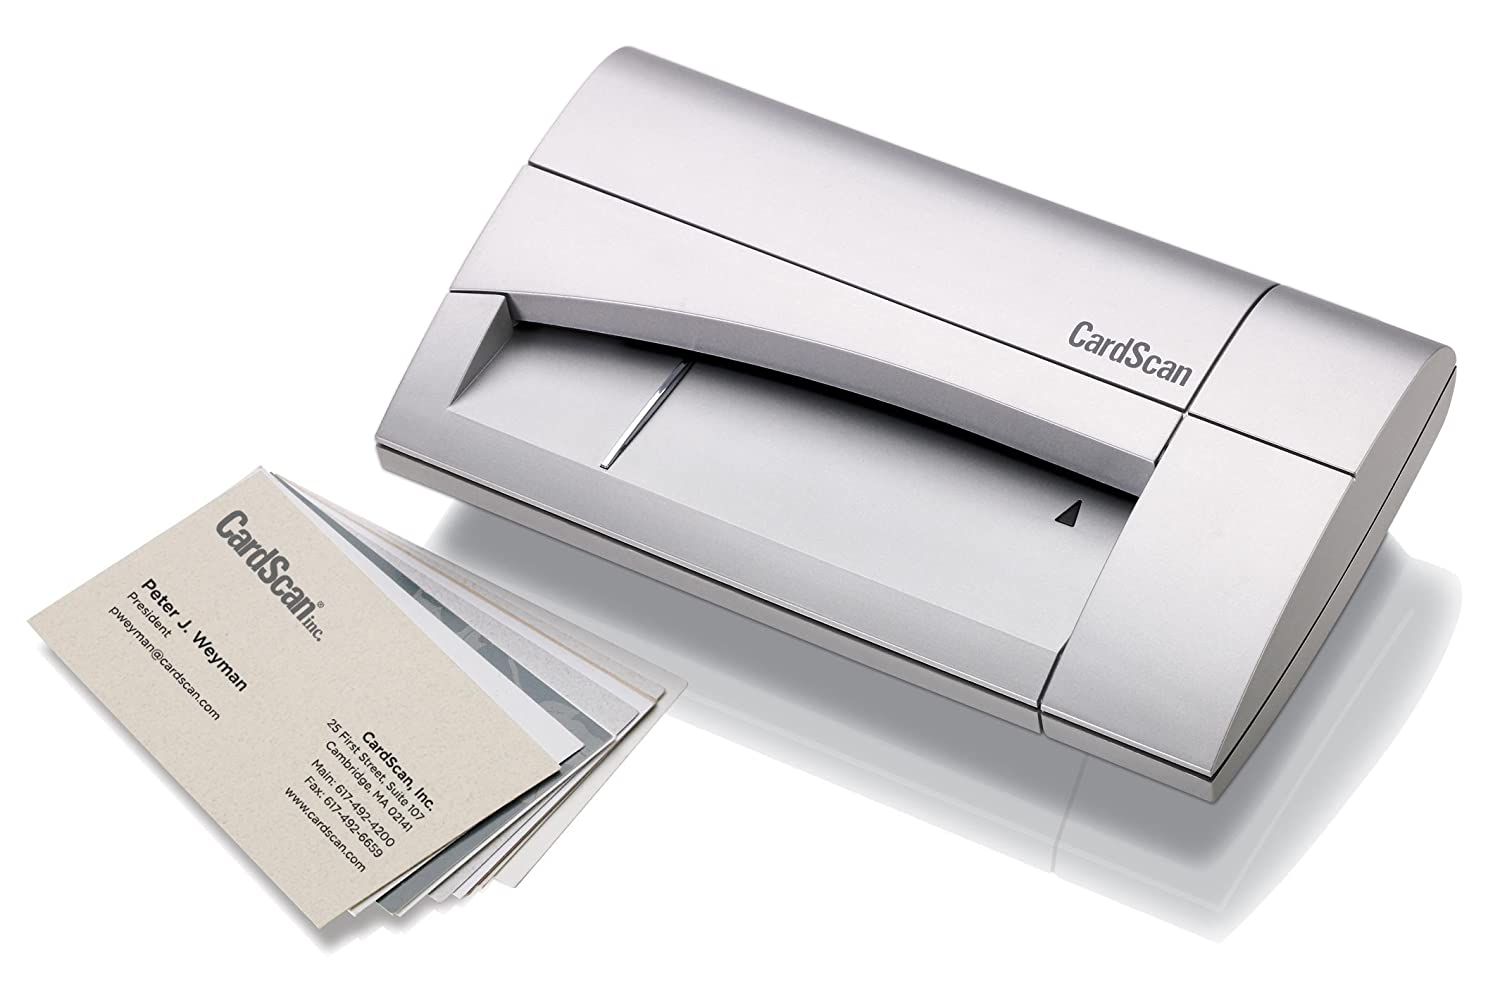 Amazon.com: CardScan Executive v8 Card Scanner: Electronics